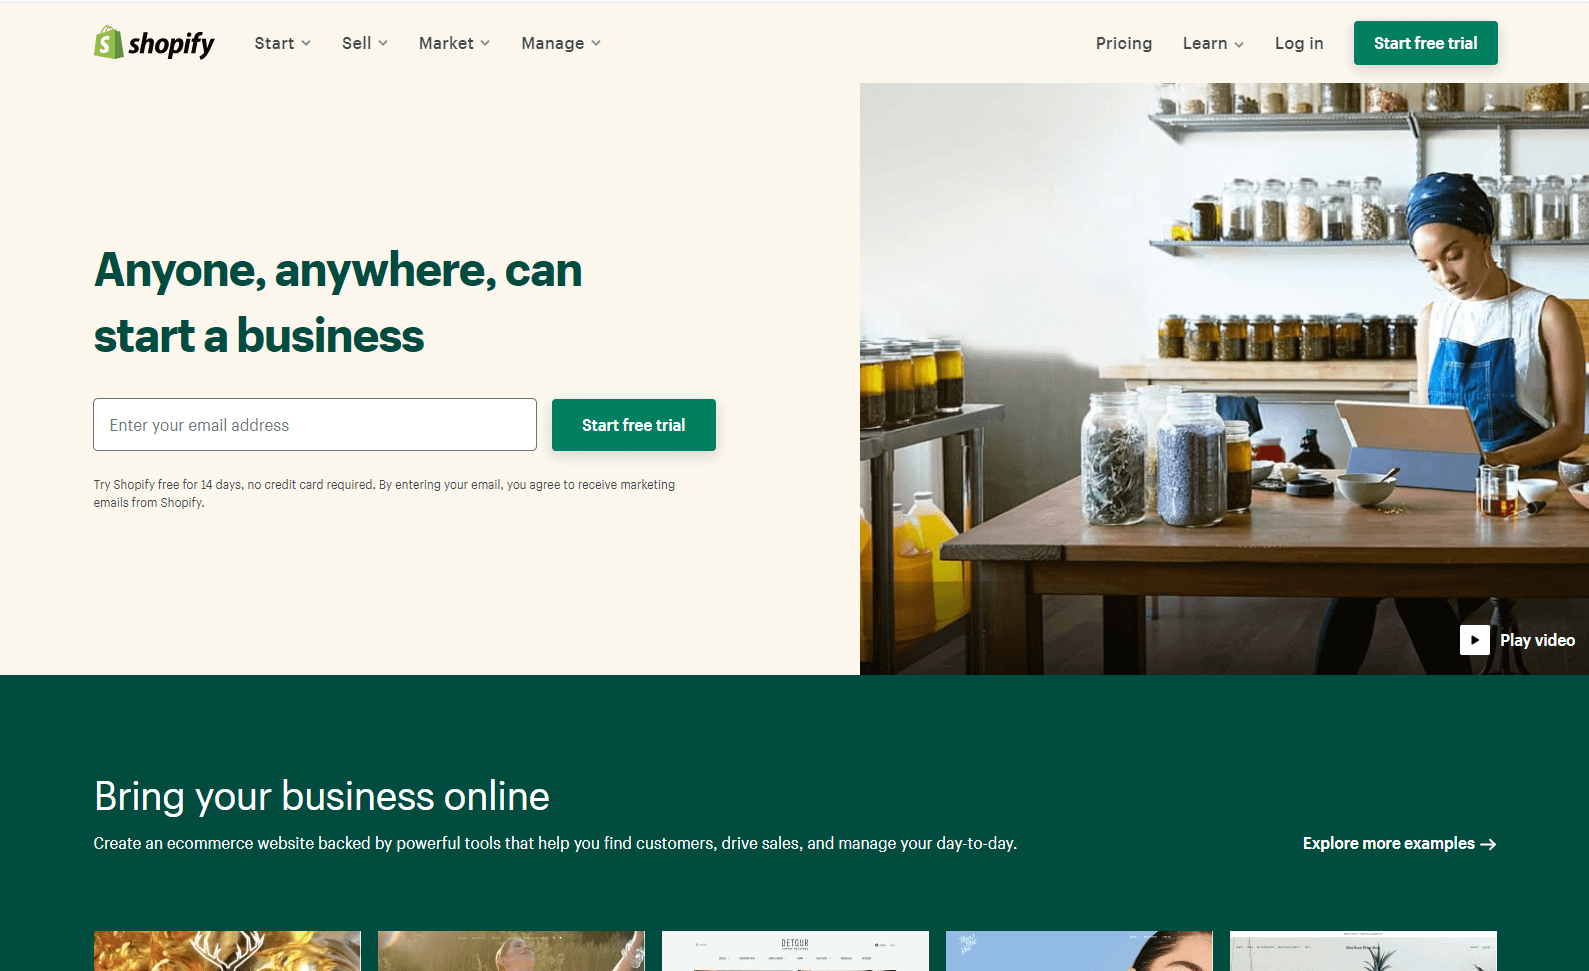 eCommerce software and marketing shopify screenshot